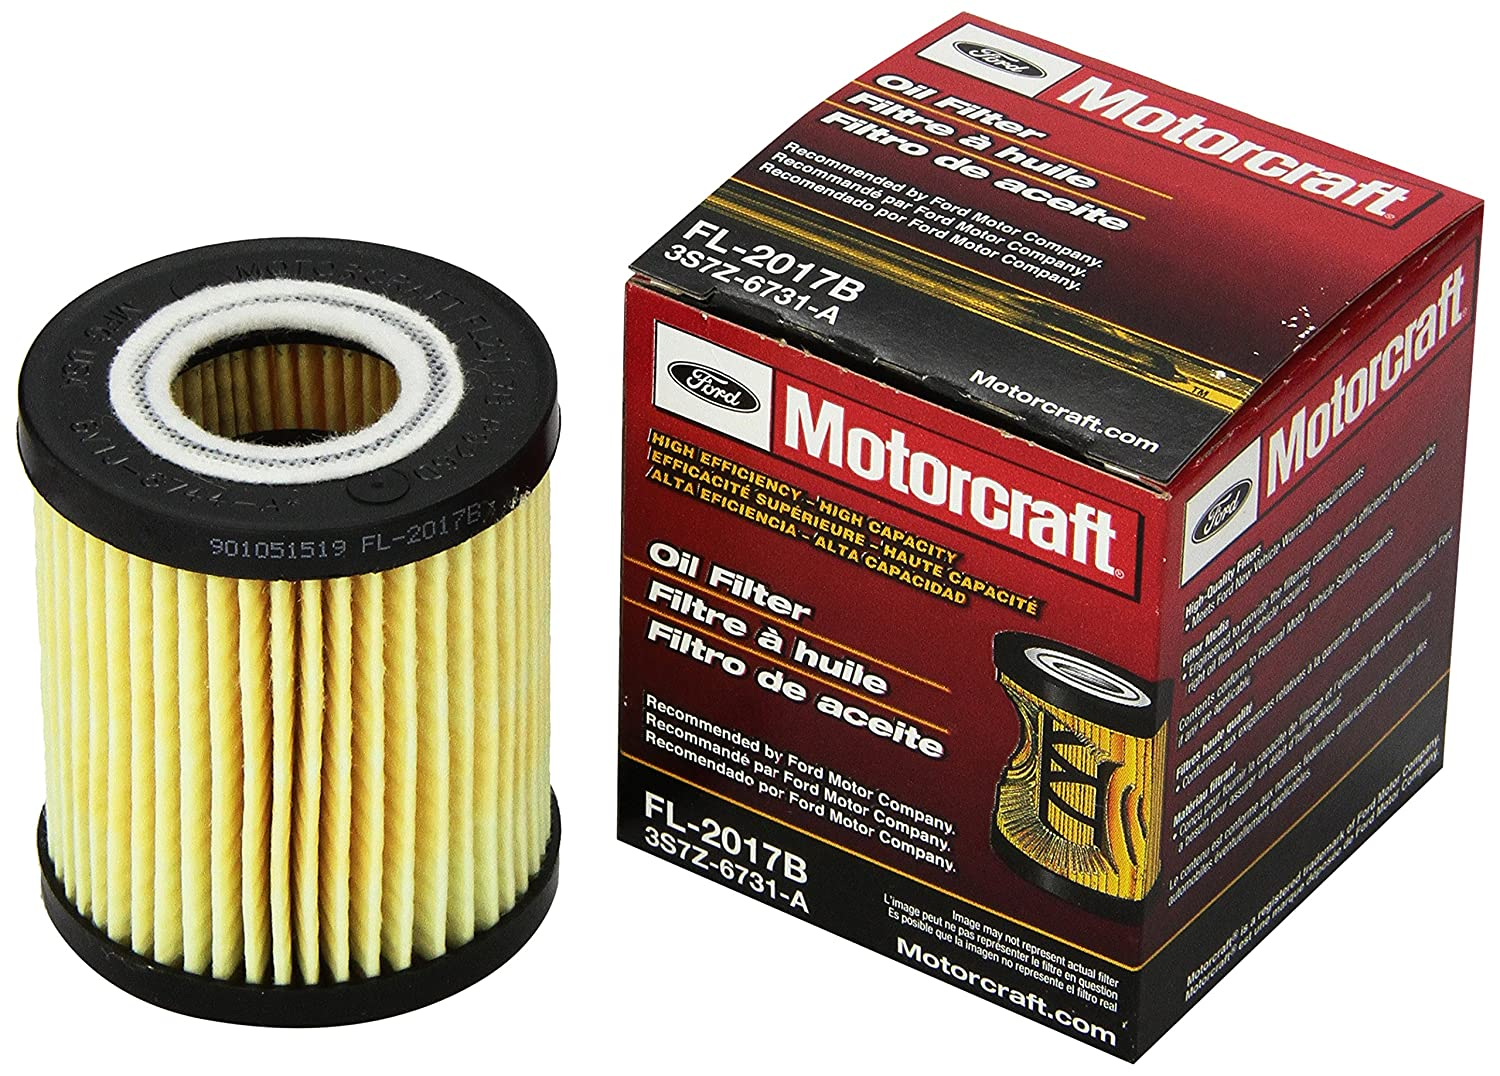 Motorcraft Fl2017b Oil Filter Automotive 2007 Ford F350 6 0 Sel Fuel